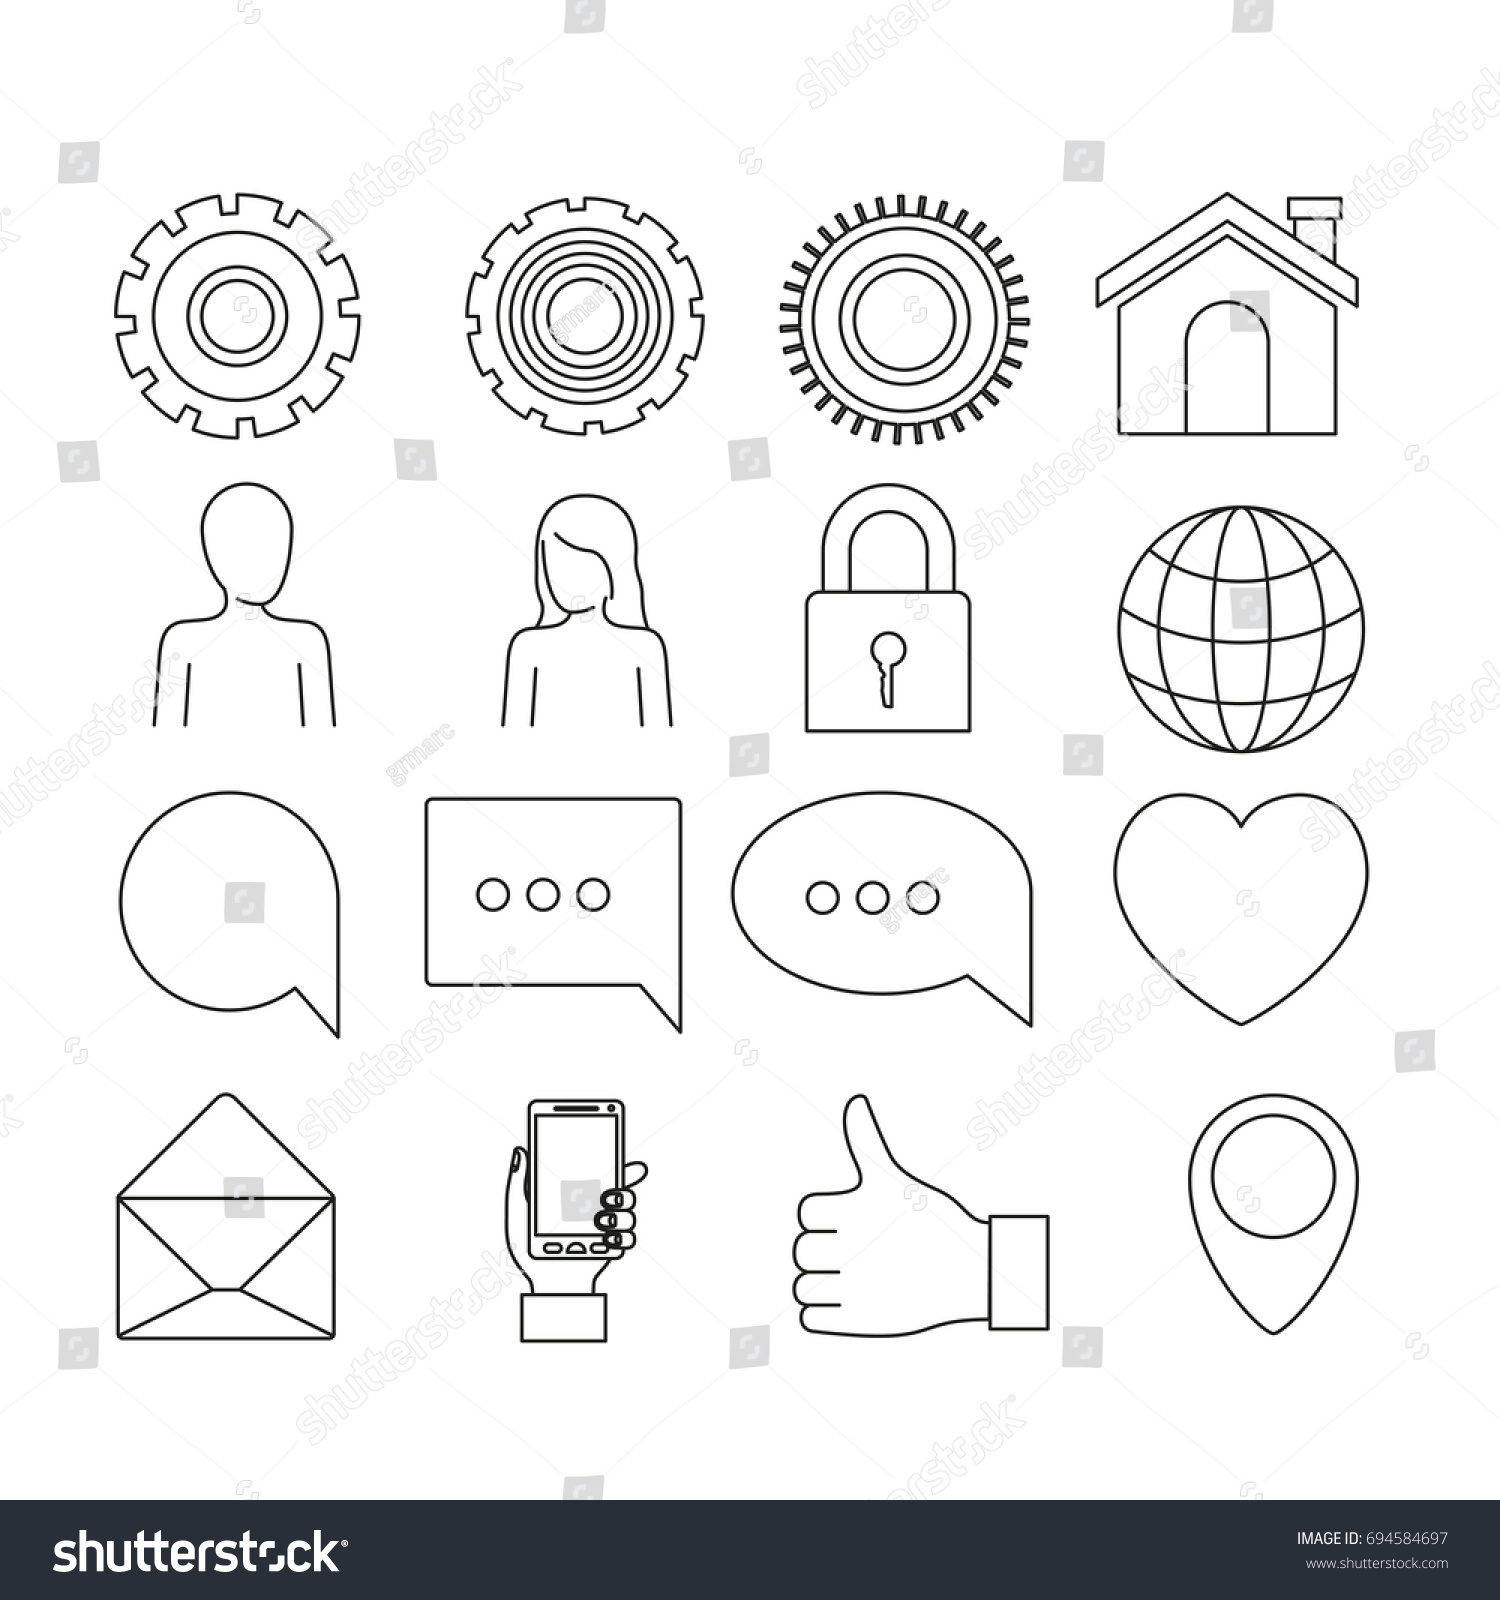 white background silhouette tech share icons stock vector royalty ID Technology white background of silhouette tech share icons elements vector illustration